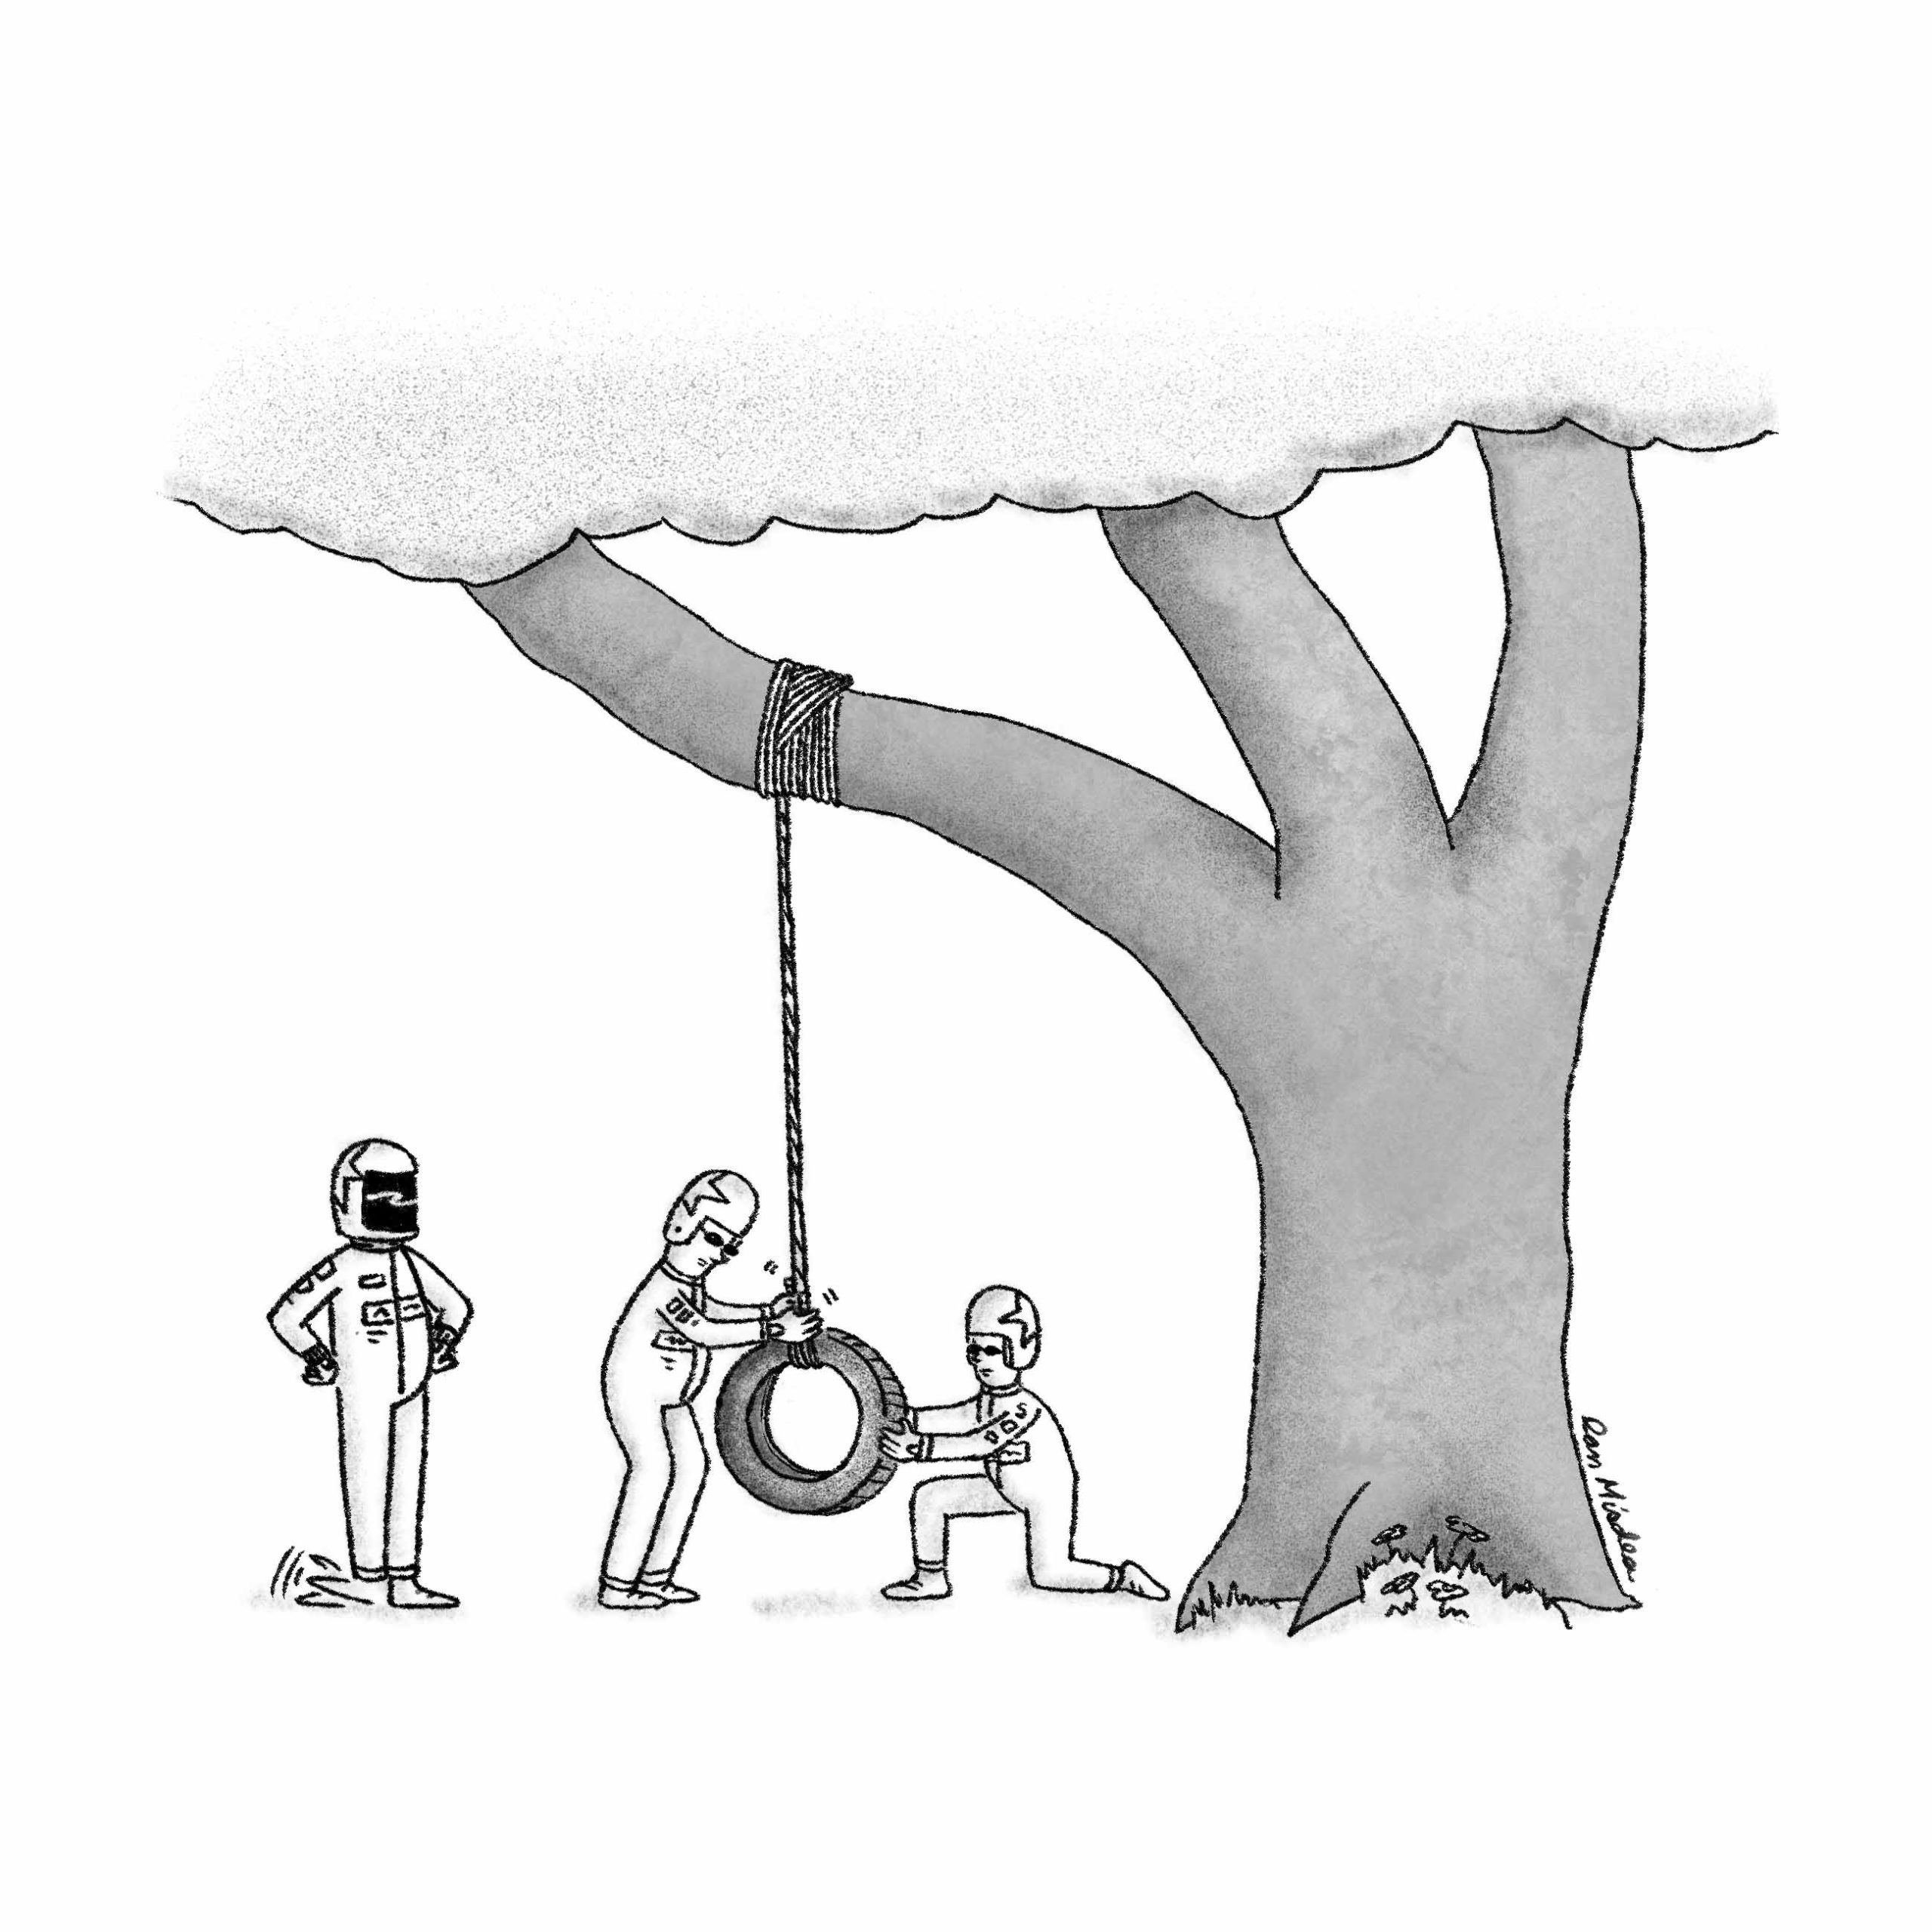 Tire Swing Change (The Funny Times)